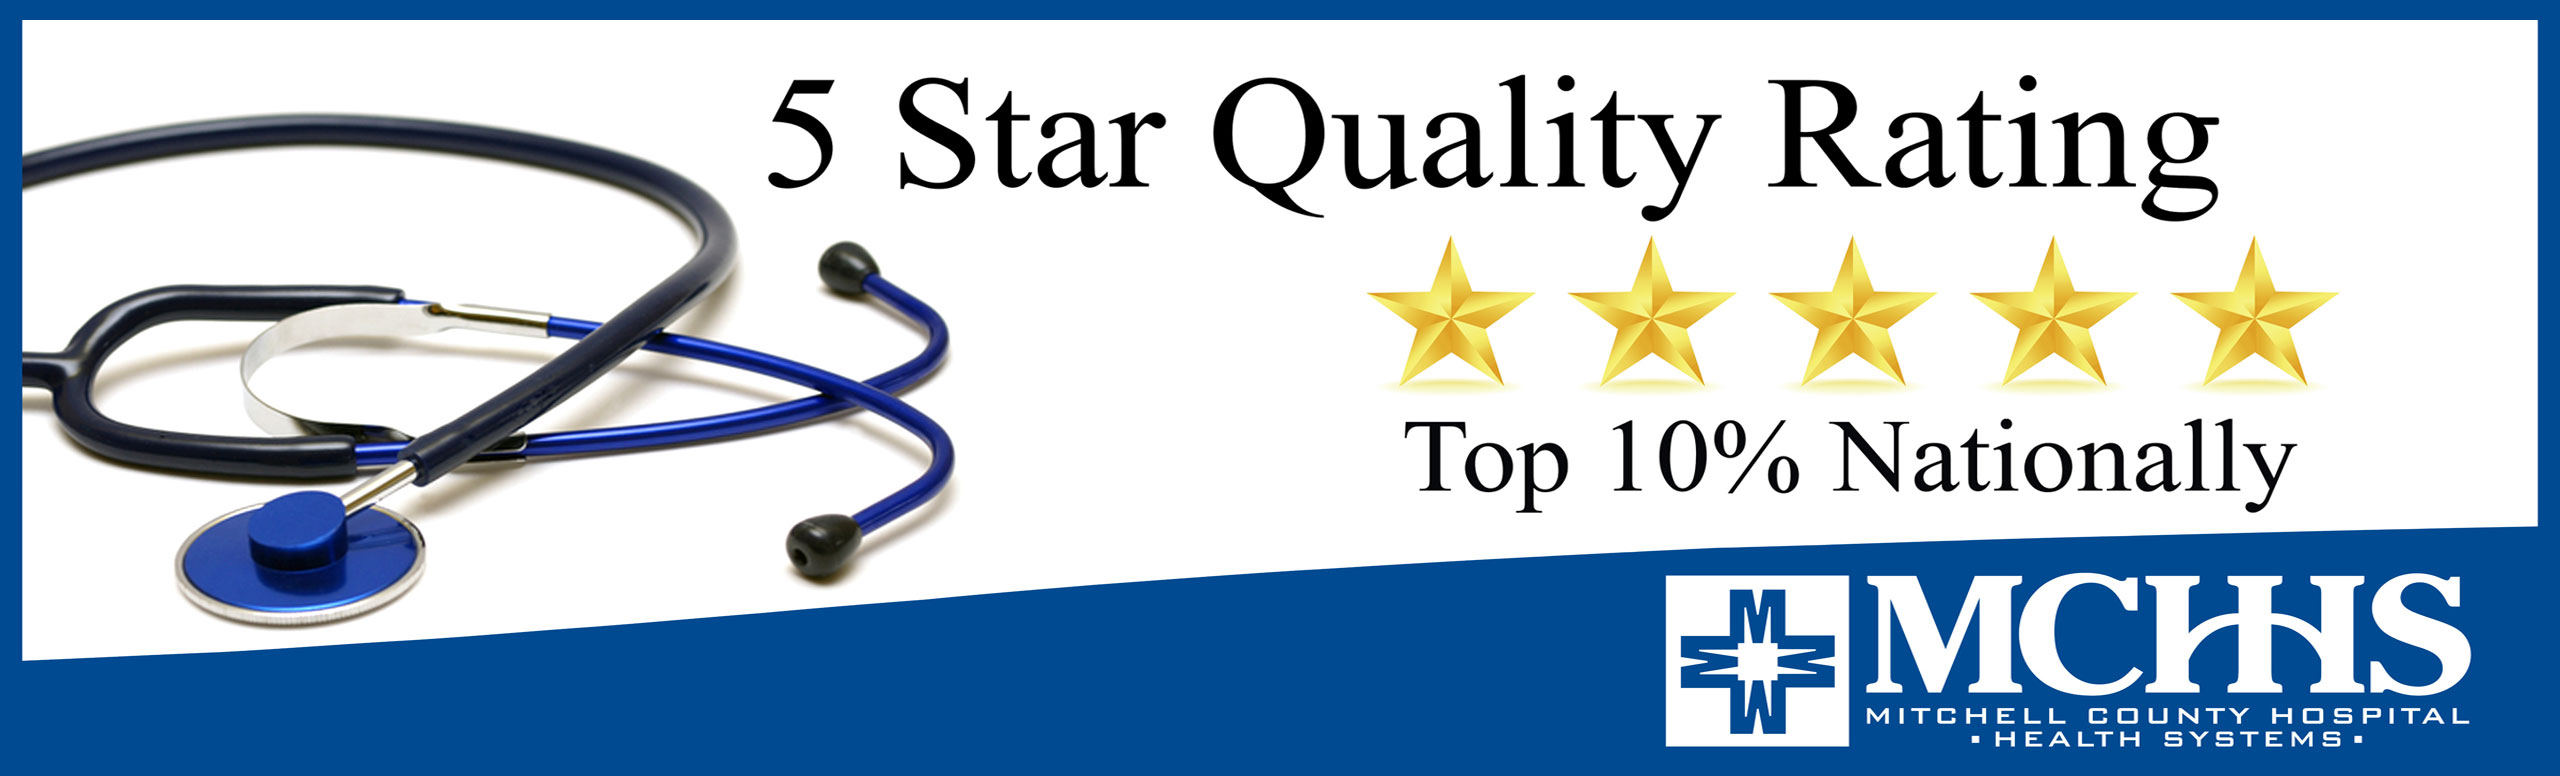 5 Star Quality Rating